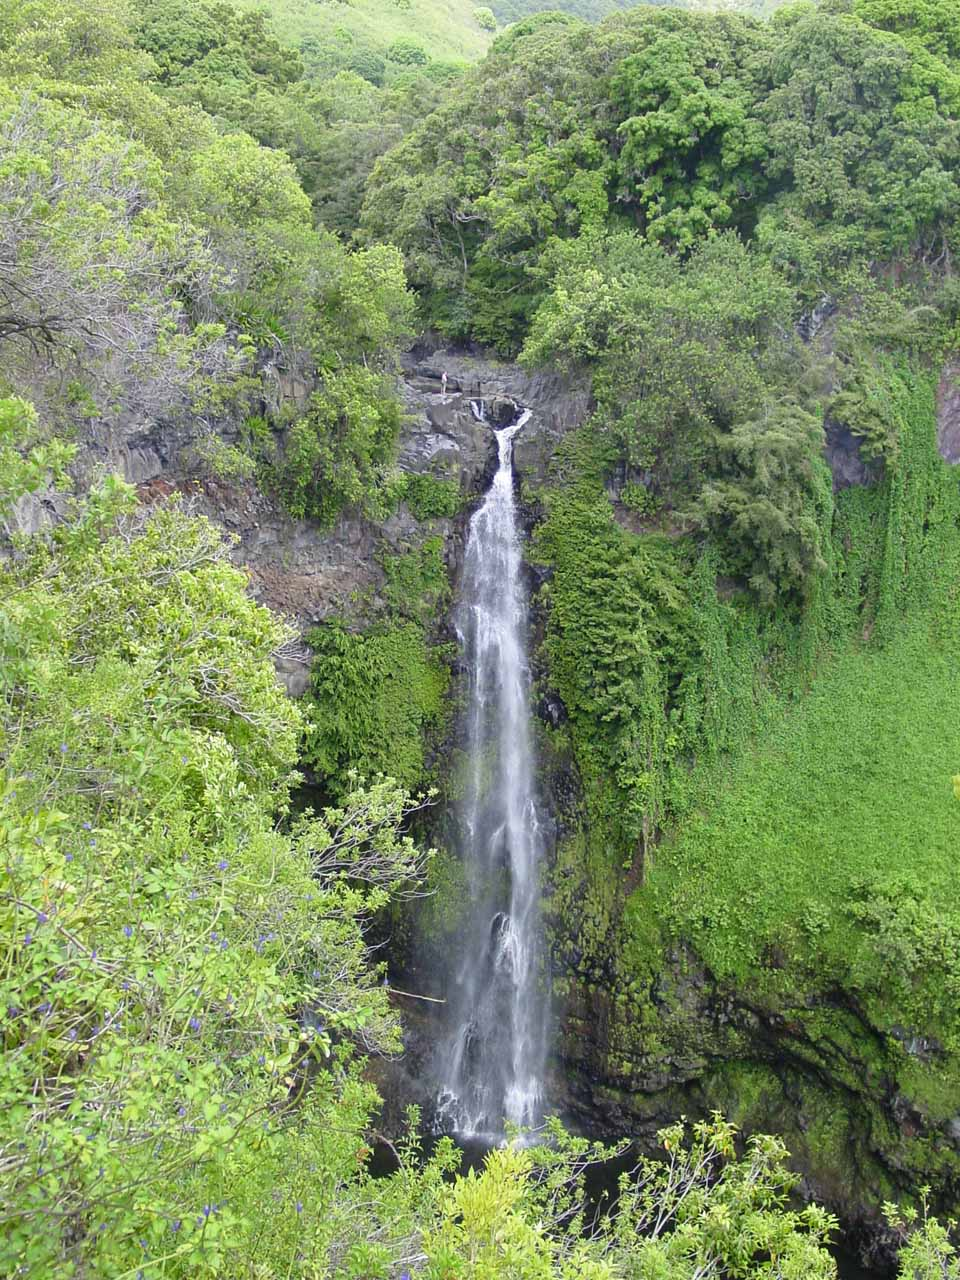 Makahiku Falls in moderate flow